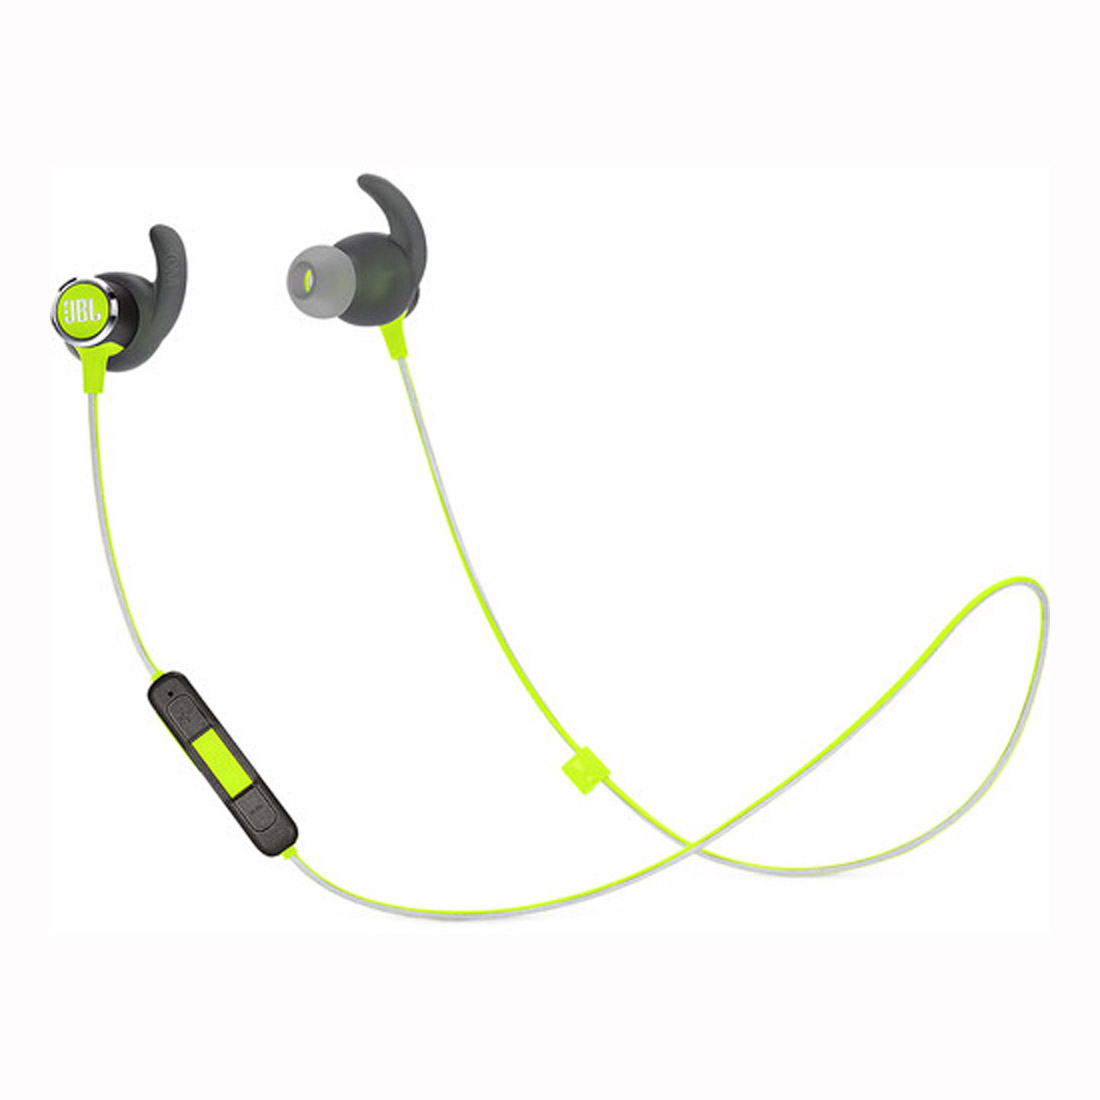 JBL Reflect Mini 2 BT Wireless Sport In-Ear Headphones - Green